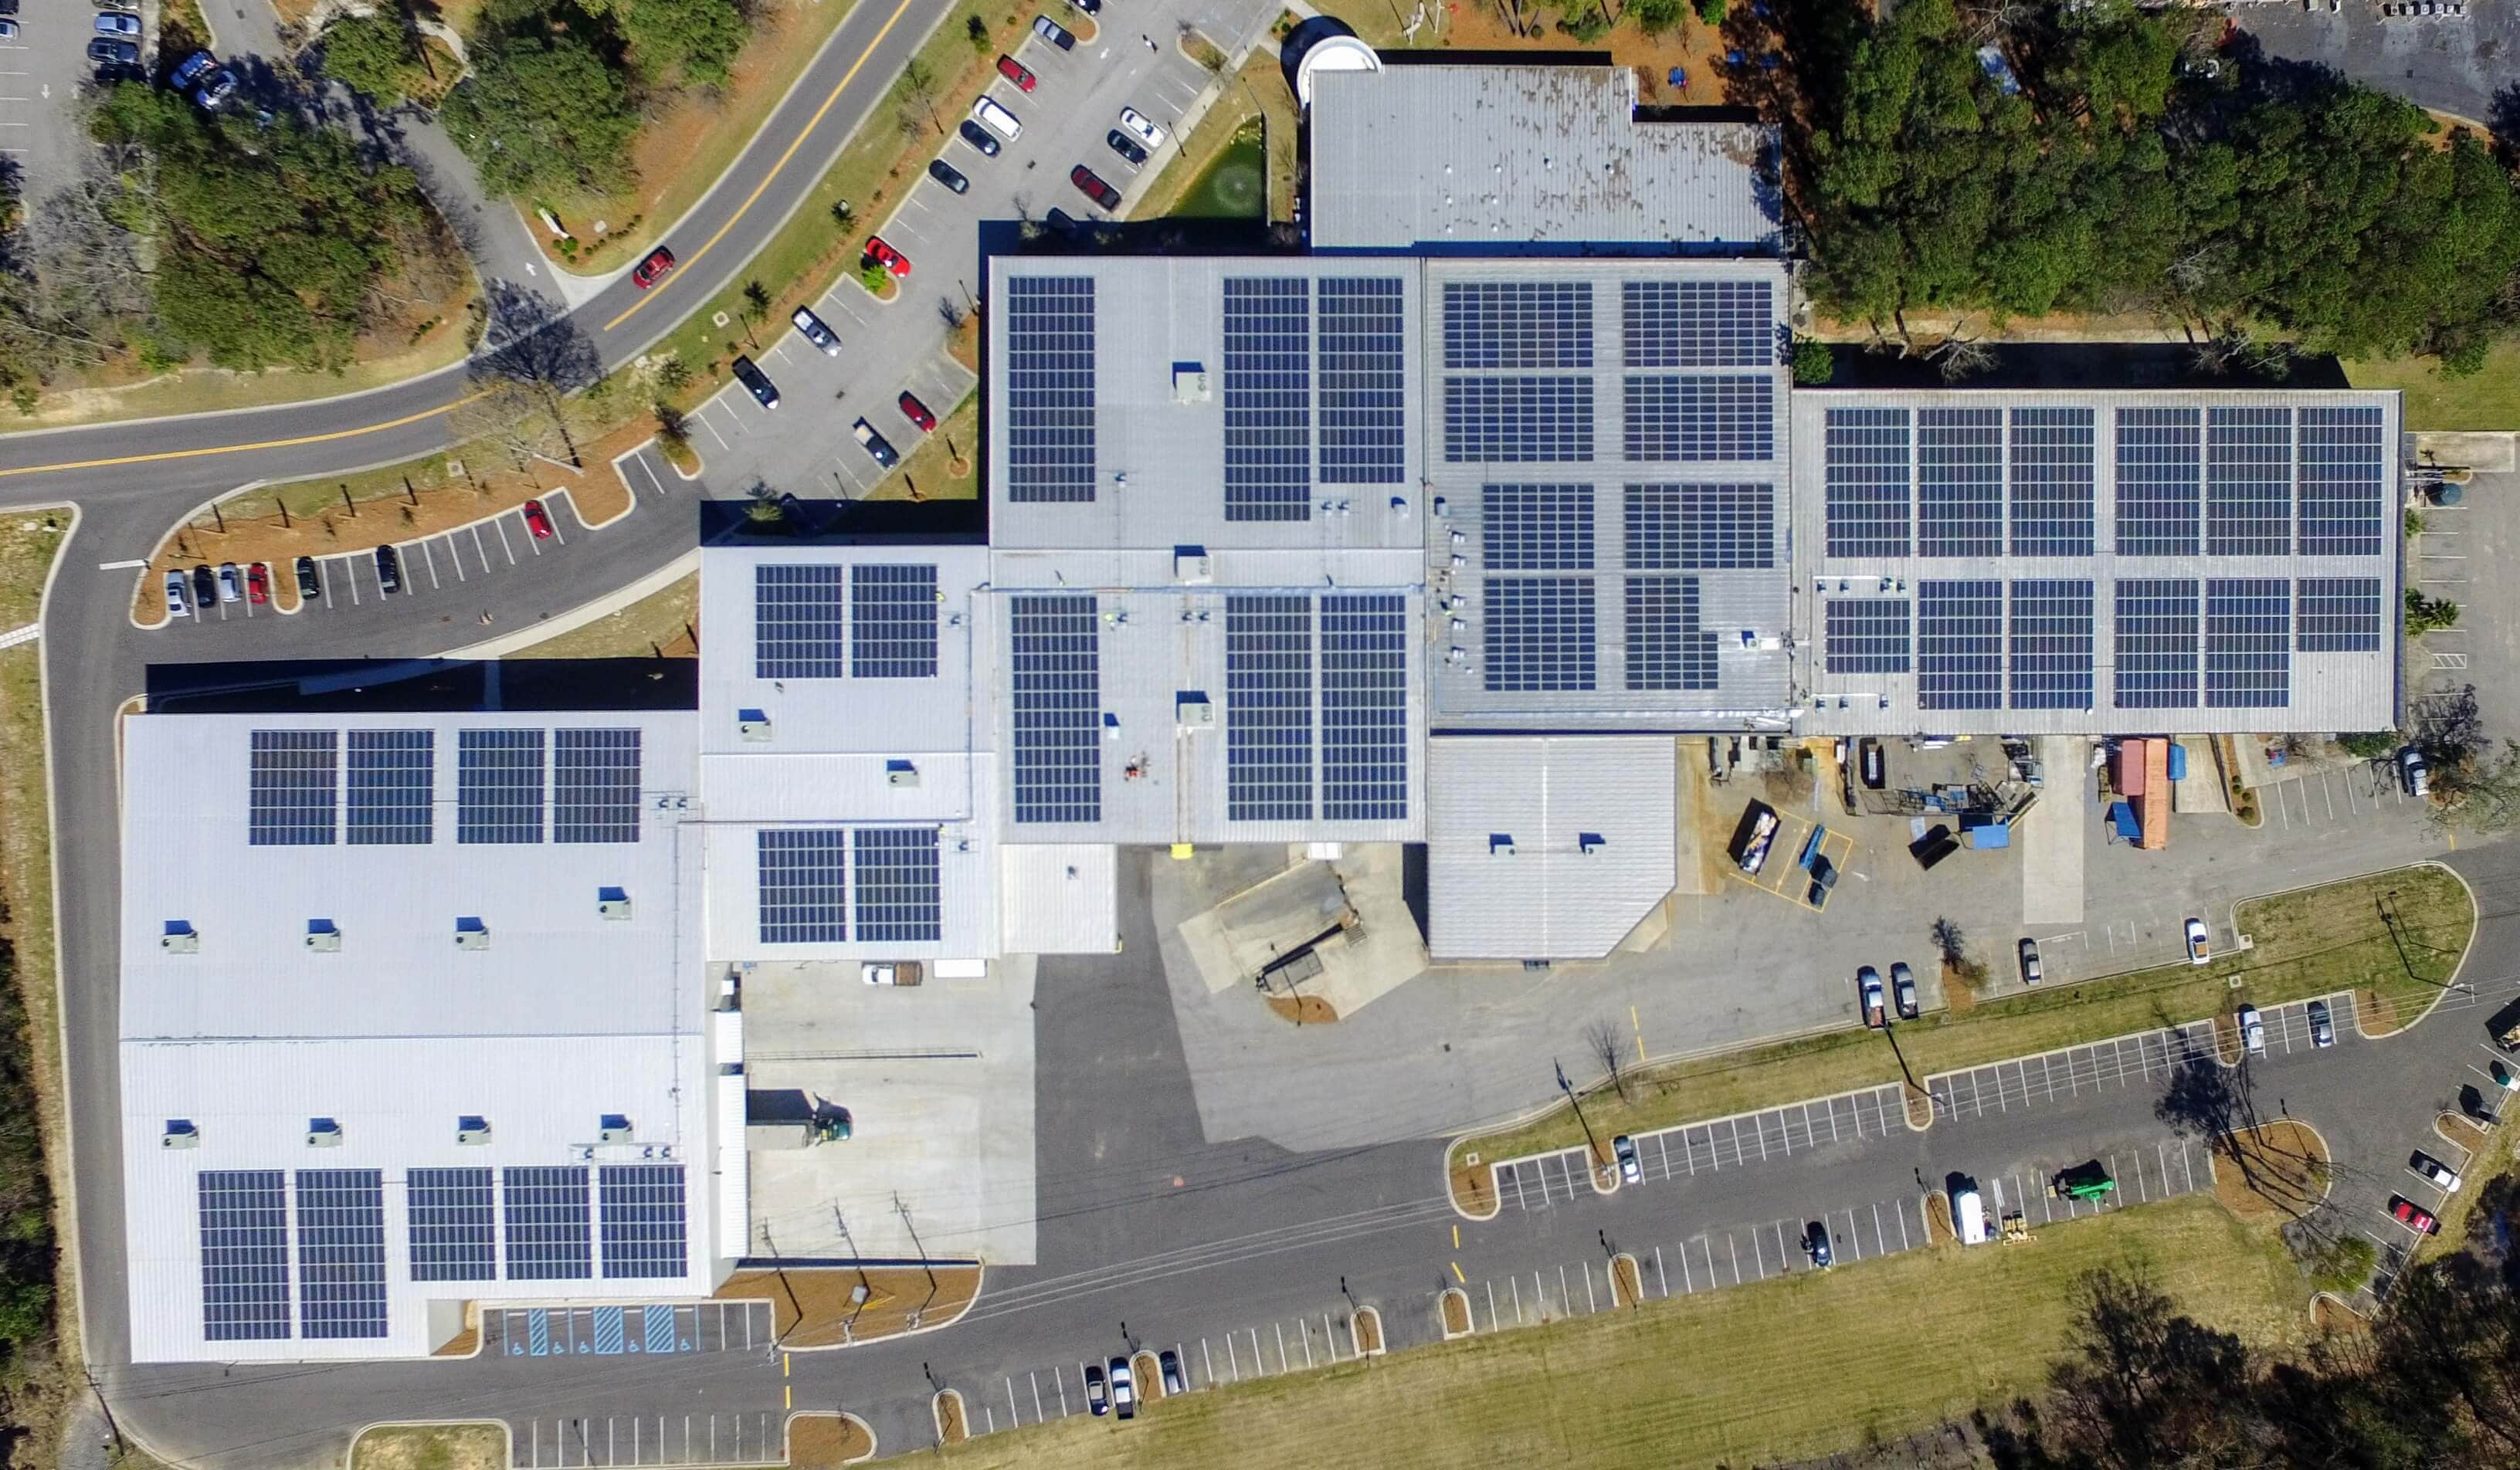 HSGS Hubner Manufacturing Flips Switch On Rooftop Solar Project